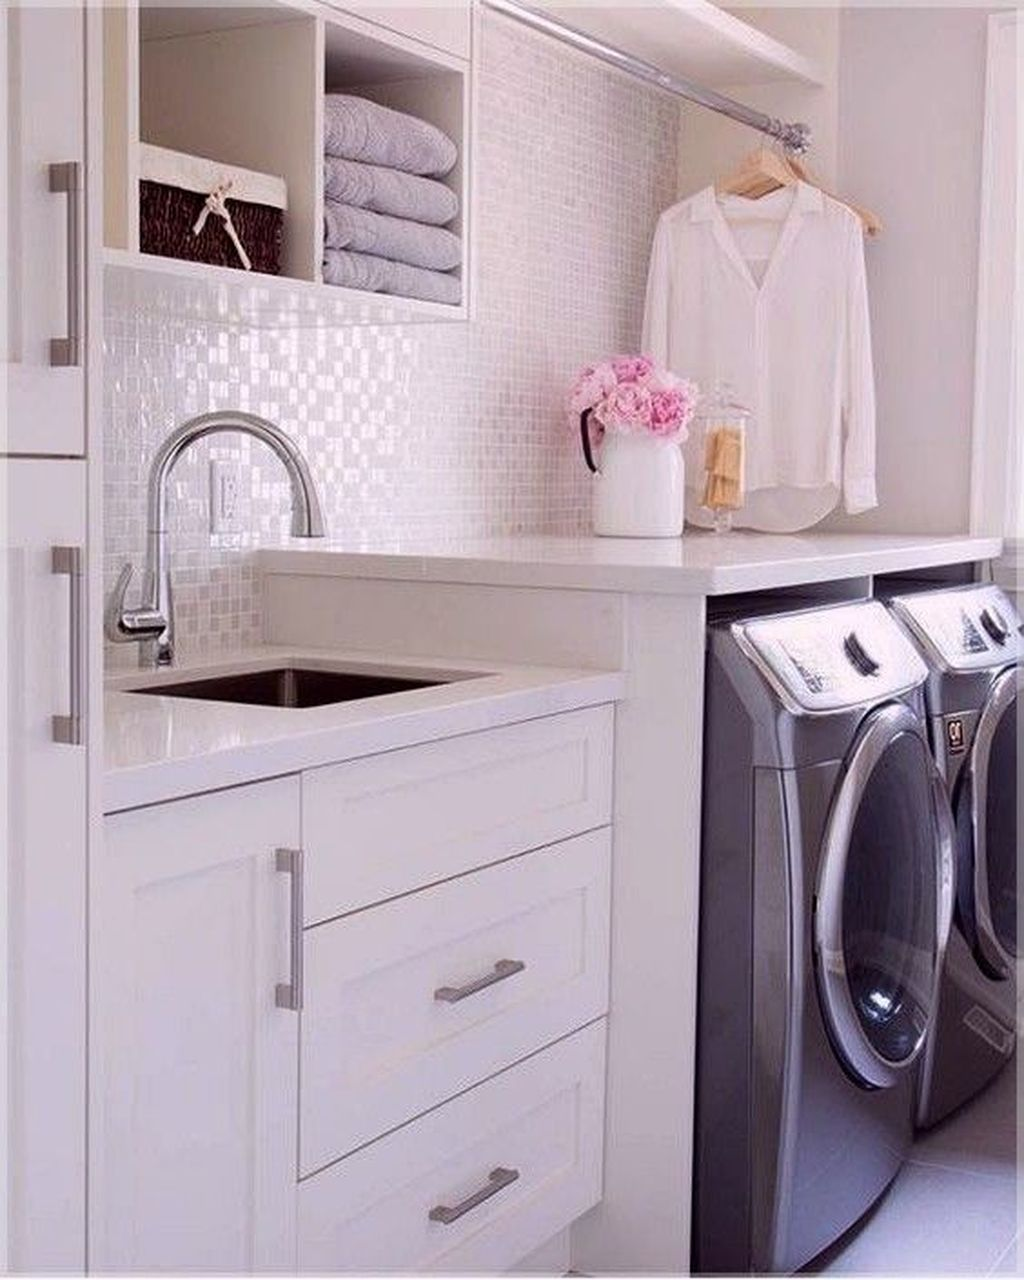 Inspiring Small Laundry Room Design And Decor Ideas 34